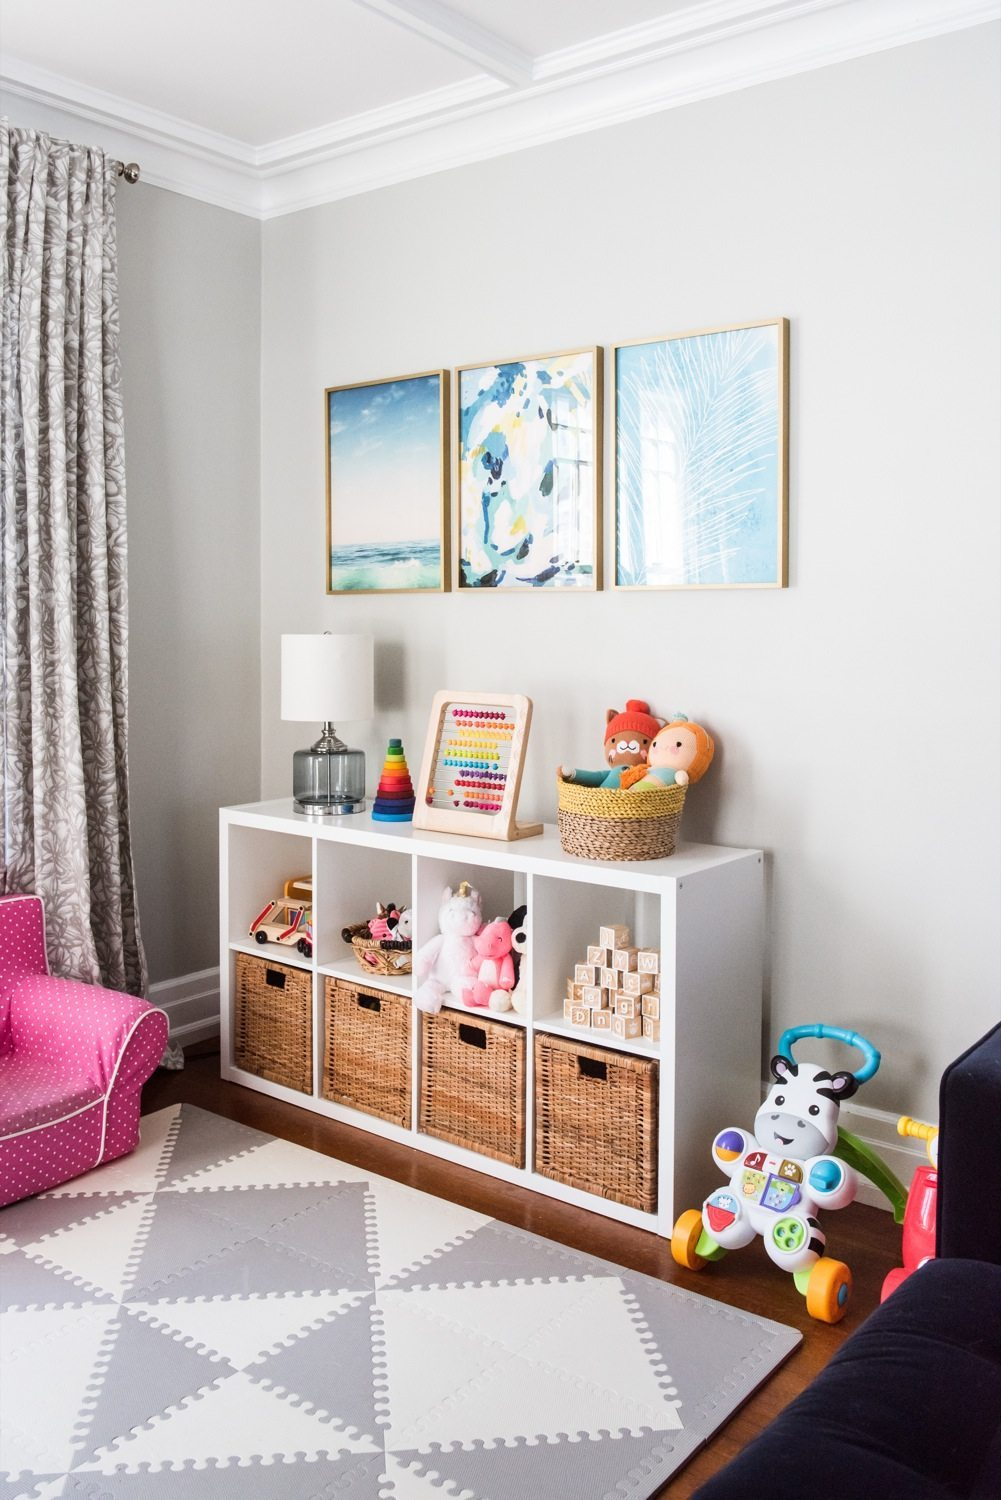 Emerson S Modern Playroom Tour The Sweetest Occasion